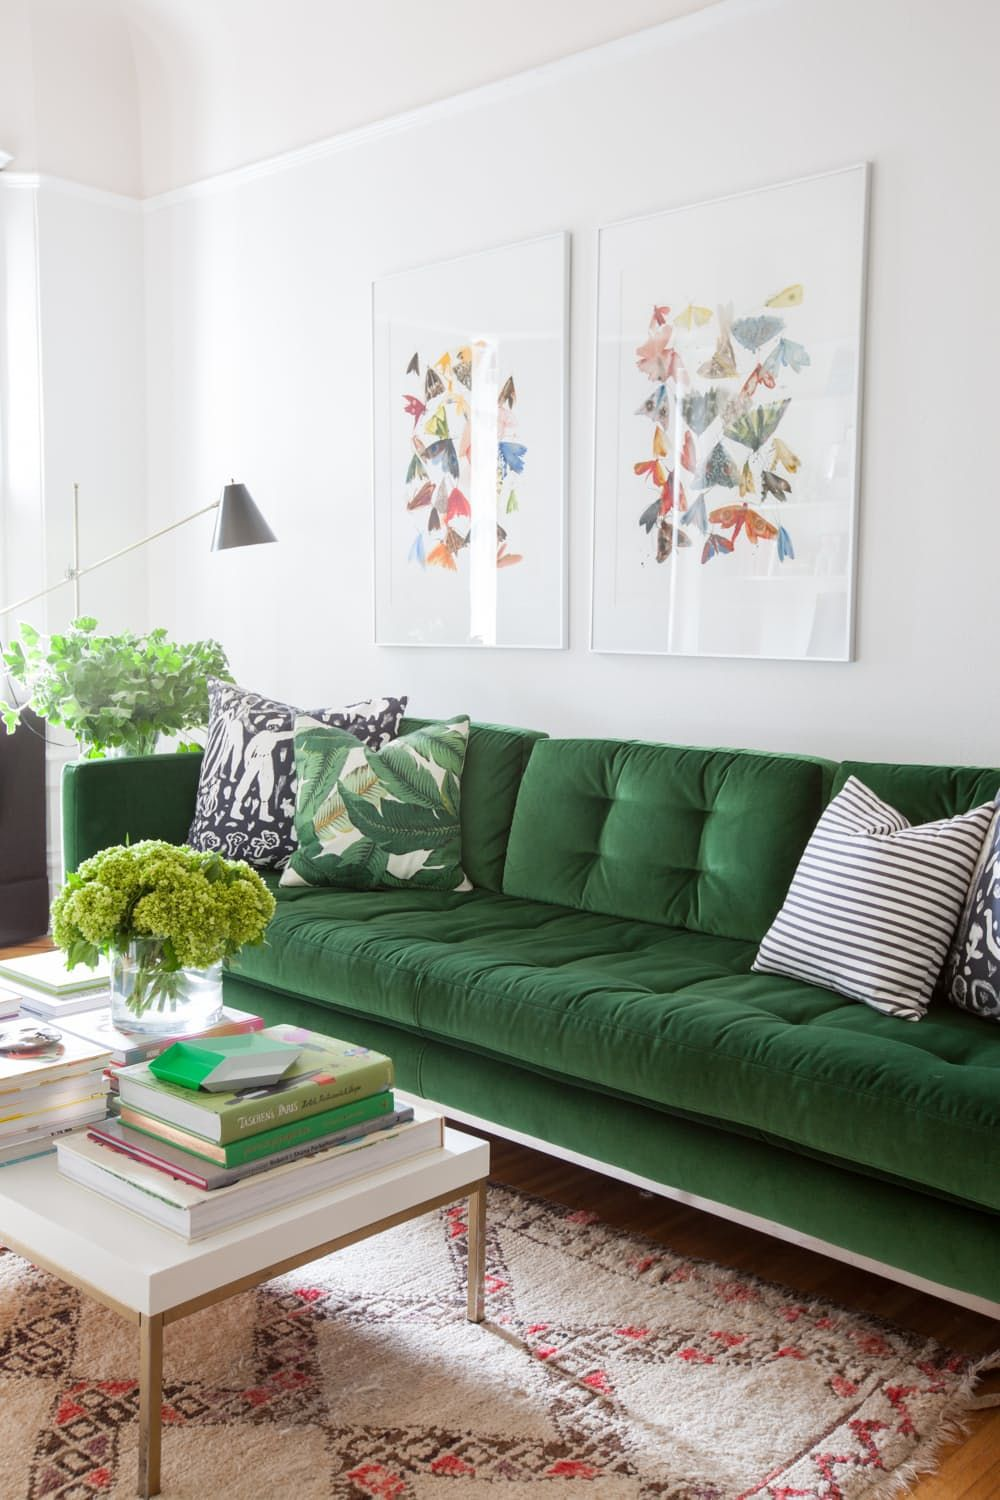 Green Couches Rock But It S The Pillows Erfly Posters That Really Make This